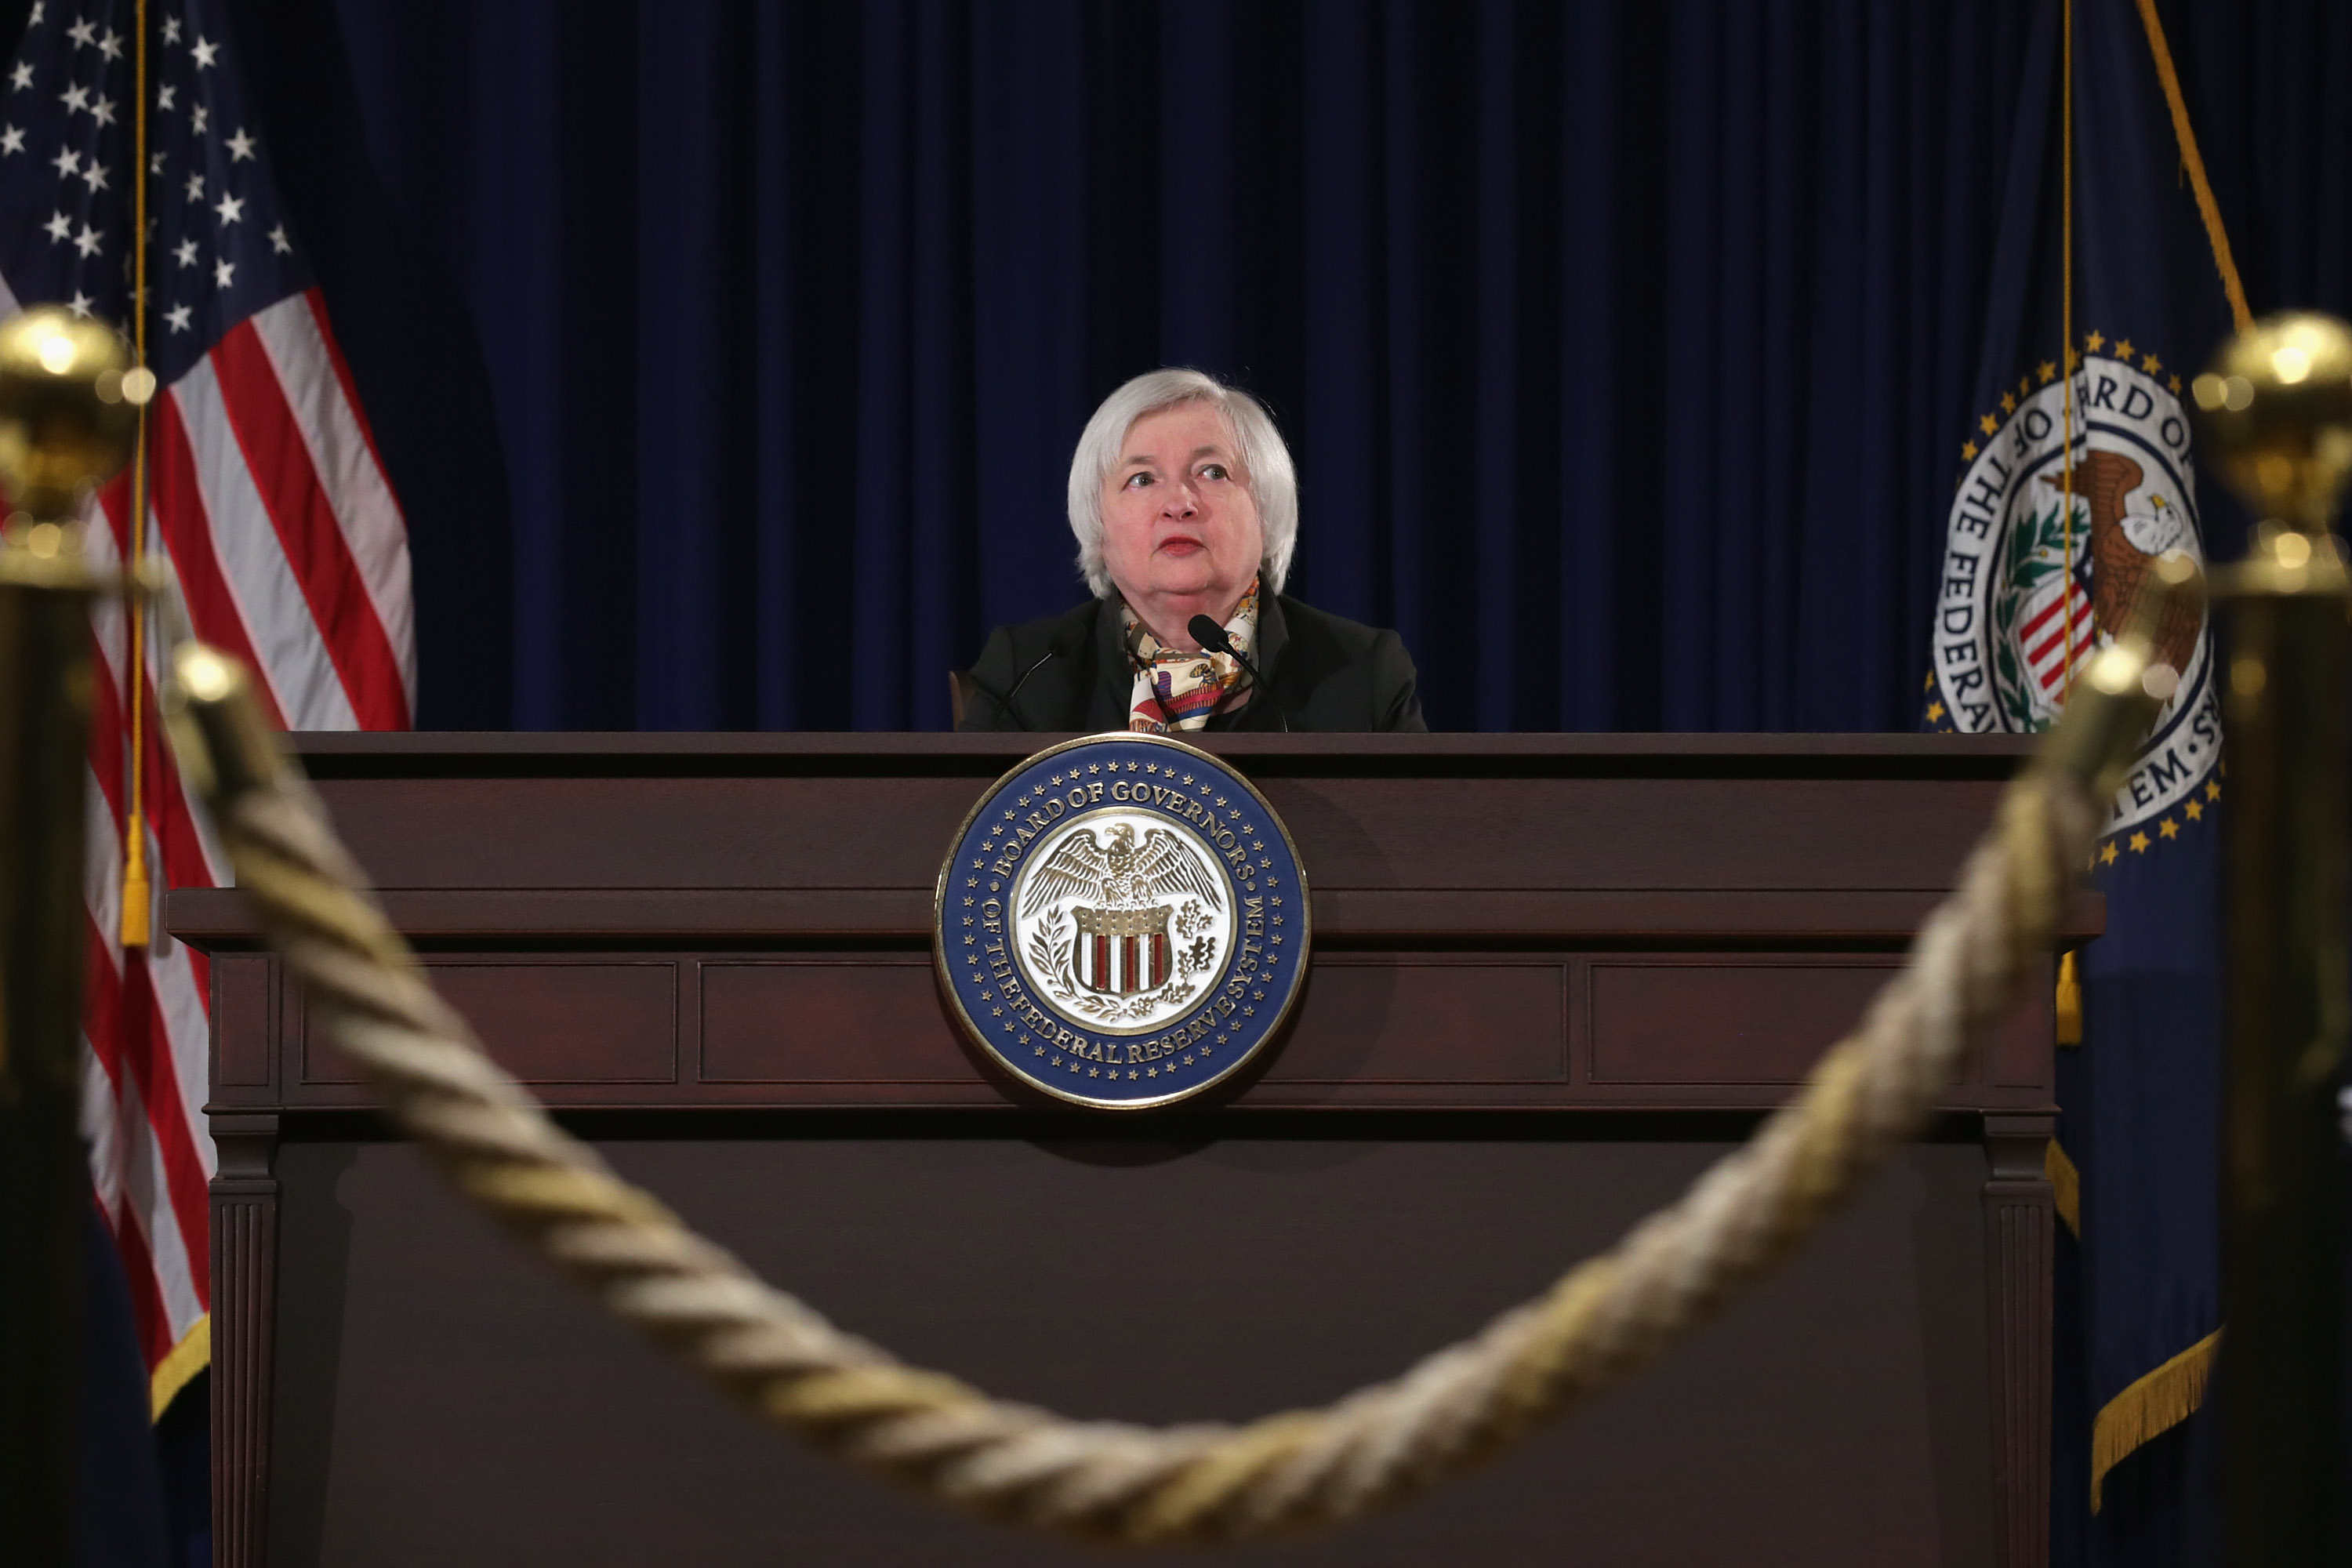 Janet Yellen Holds Press Conference On Interest Rates